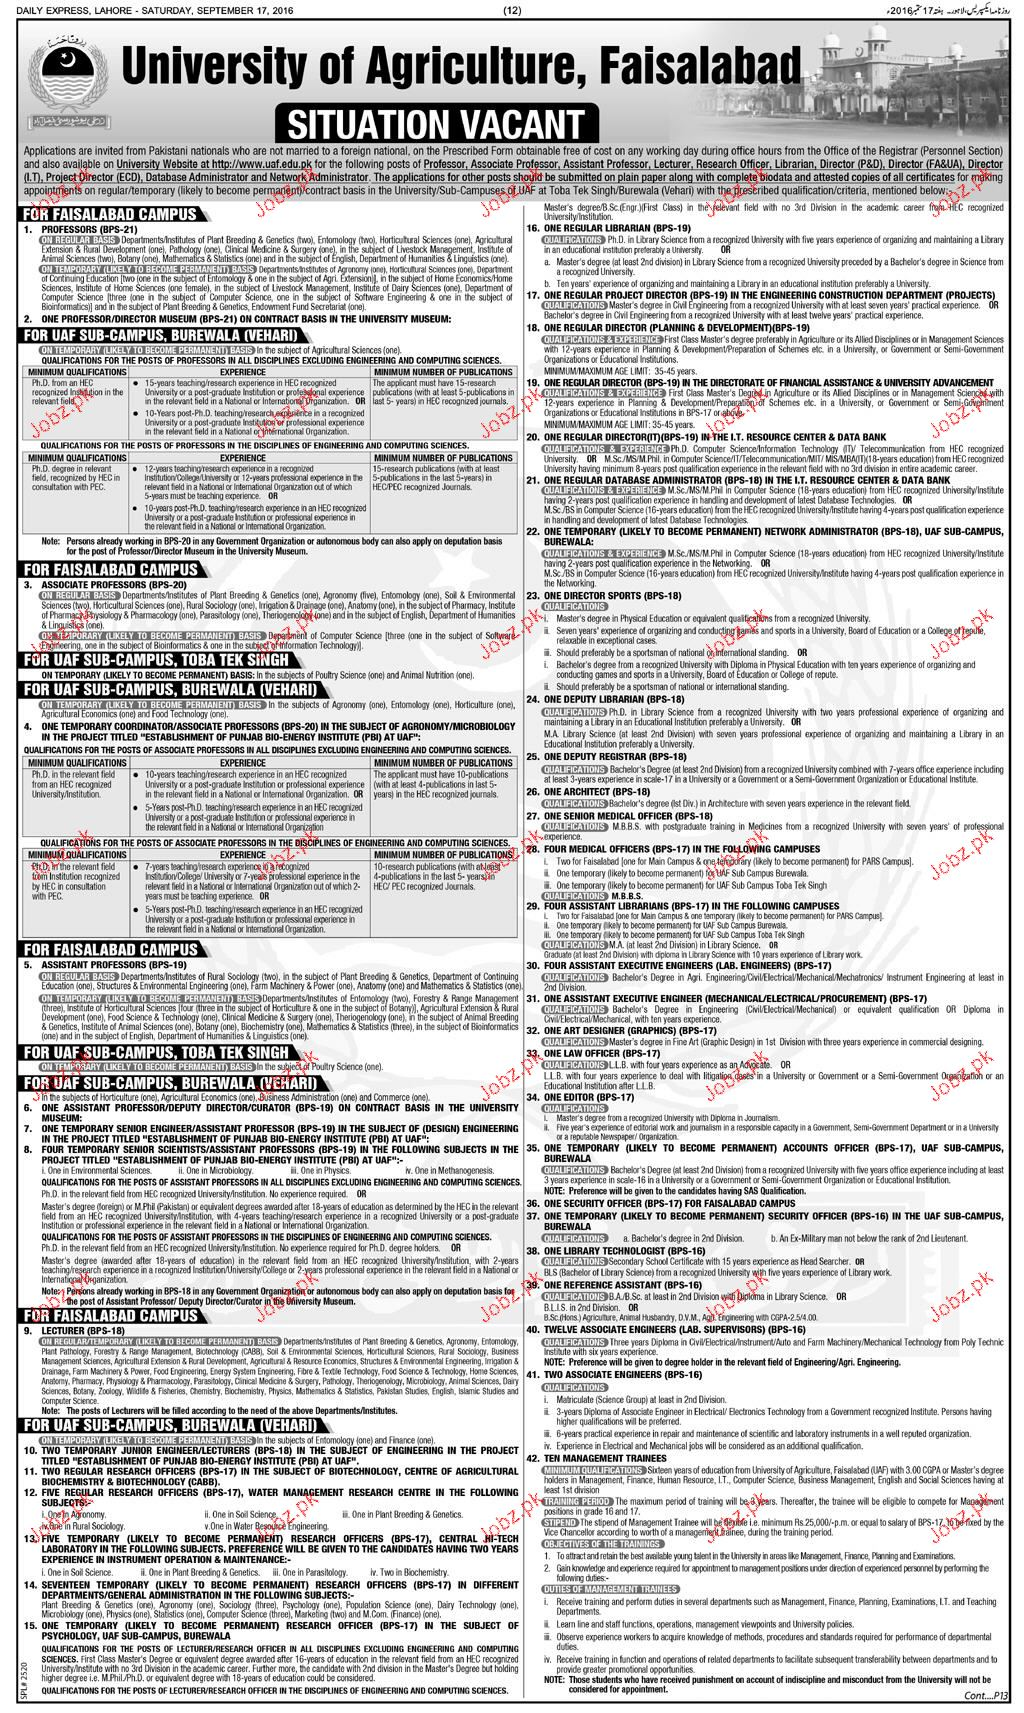 Teaching Jobs in University of Agriculture